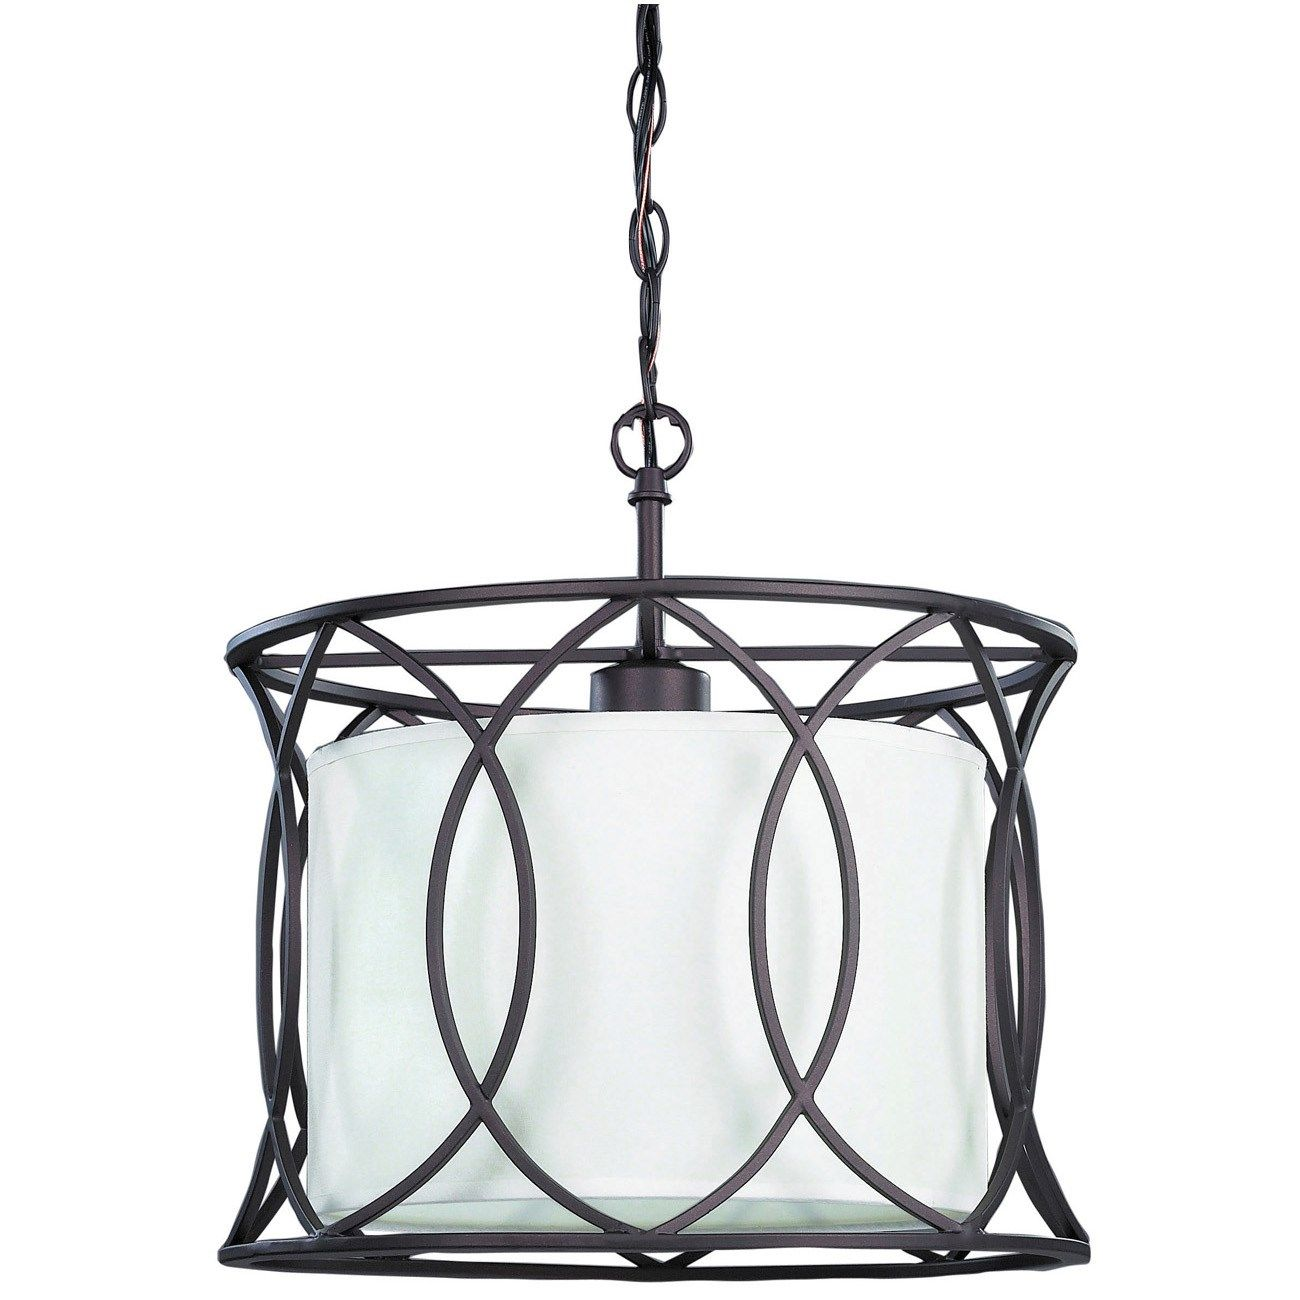 "Canarm Lighting IPL320A01ORB14 Monica 13-1/2"" 1 Light Pendant in Oil Rubbed Bronze"